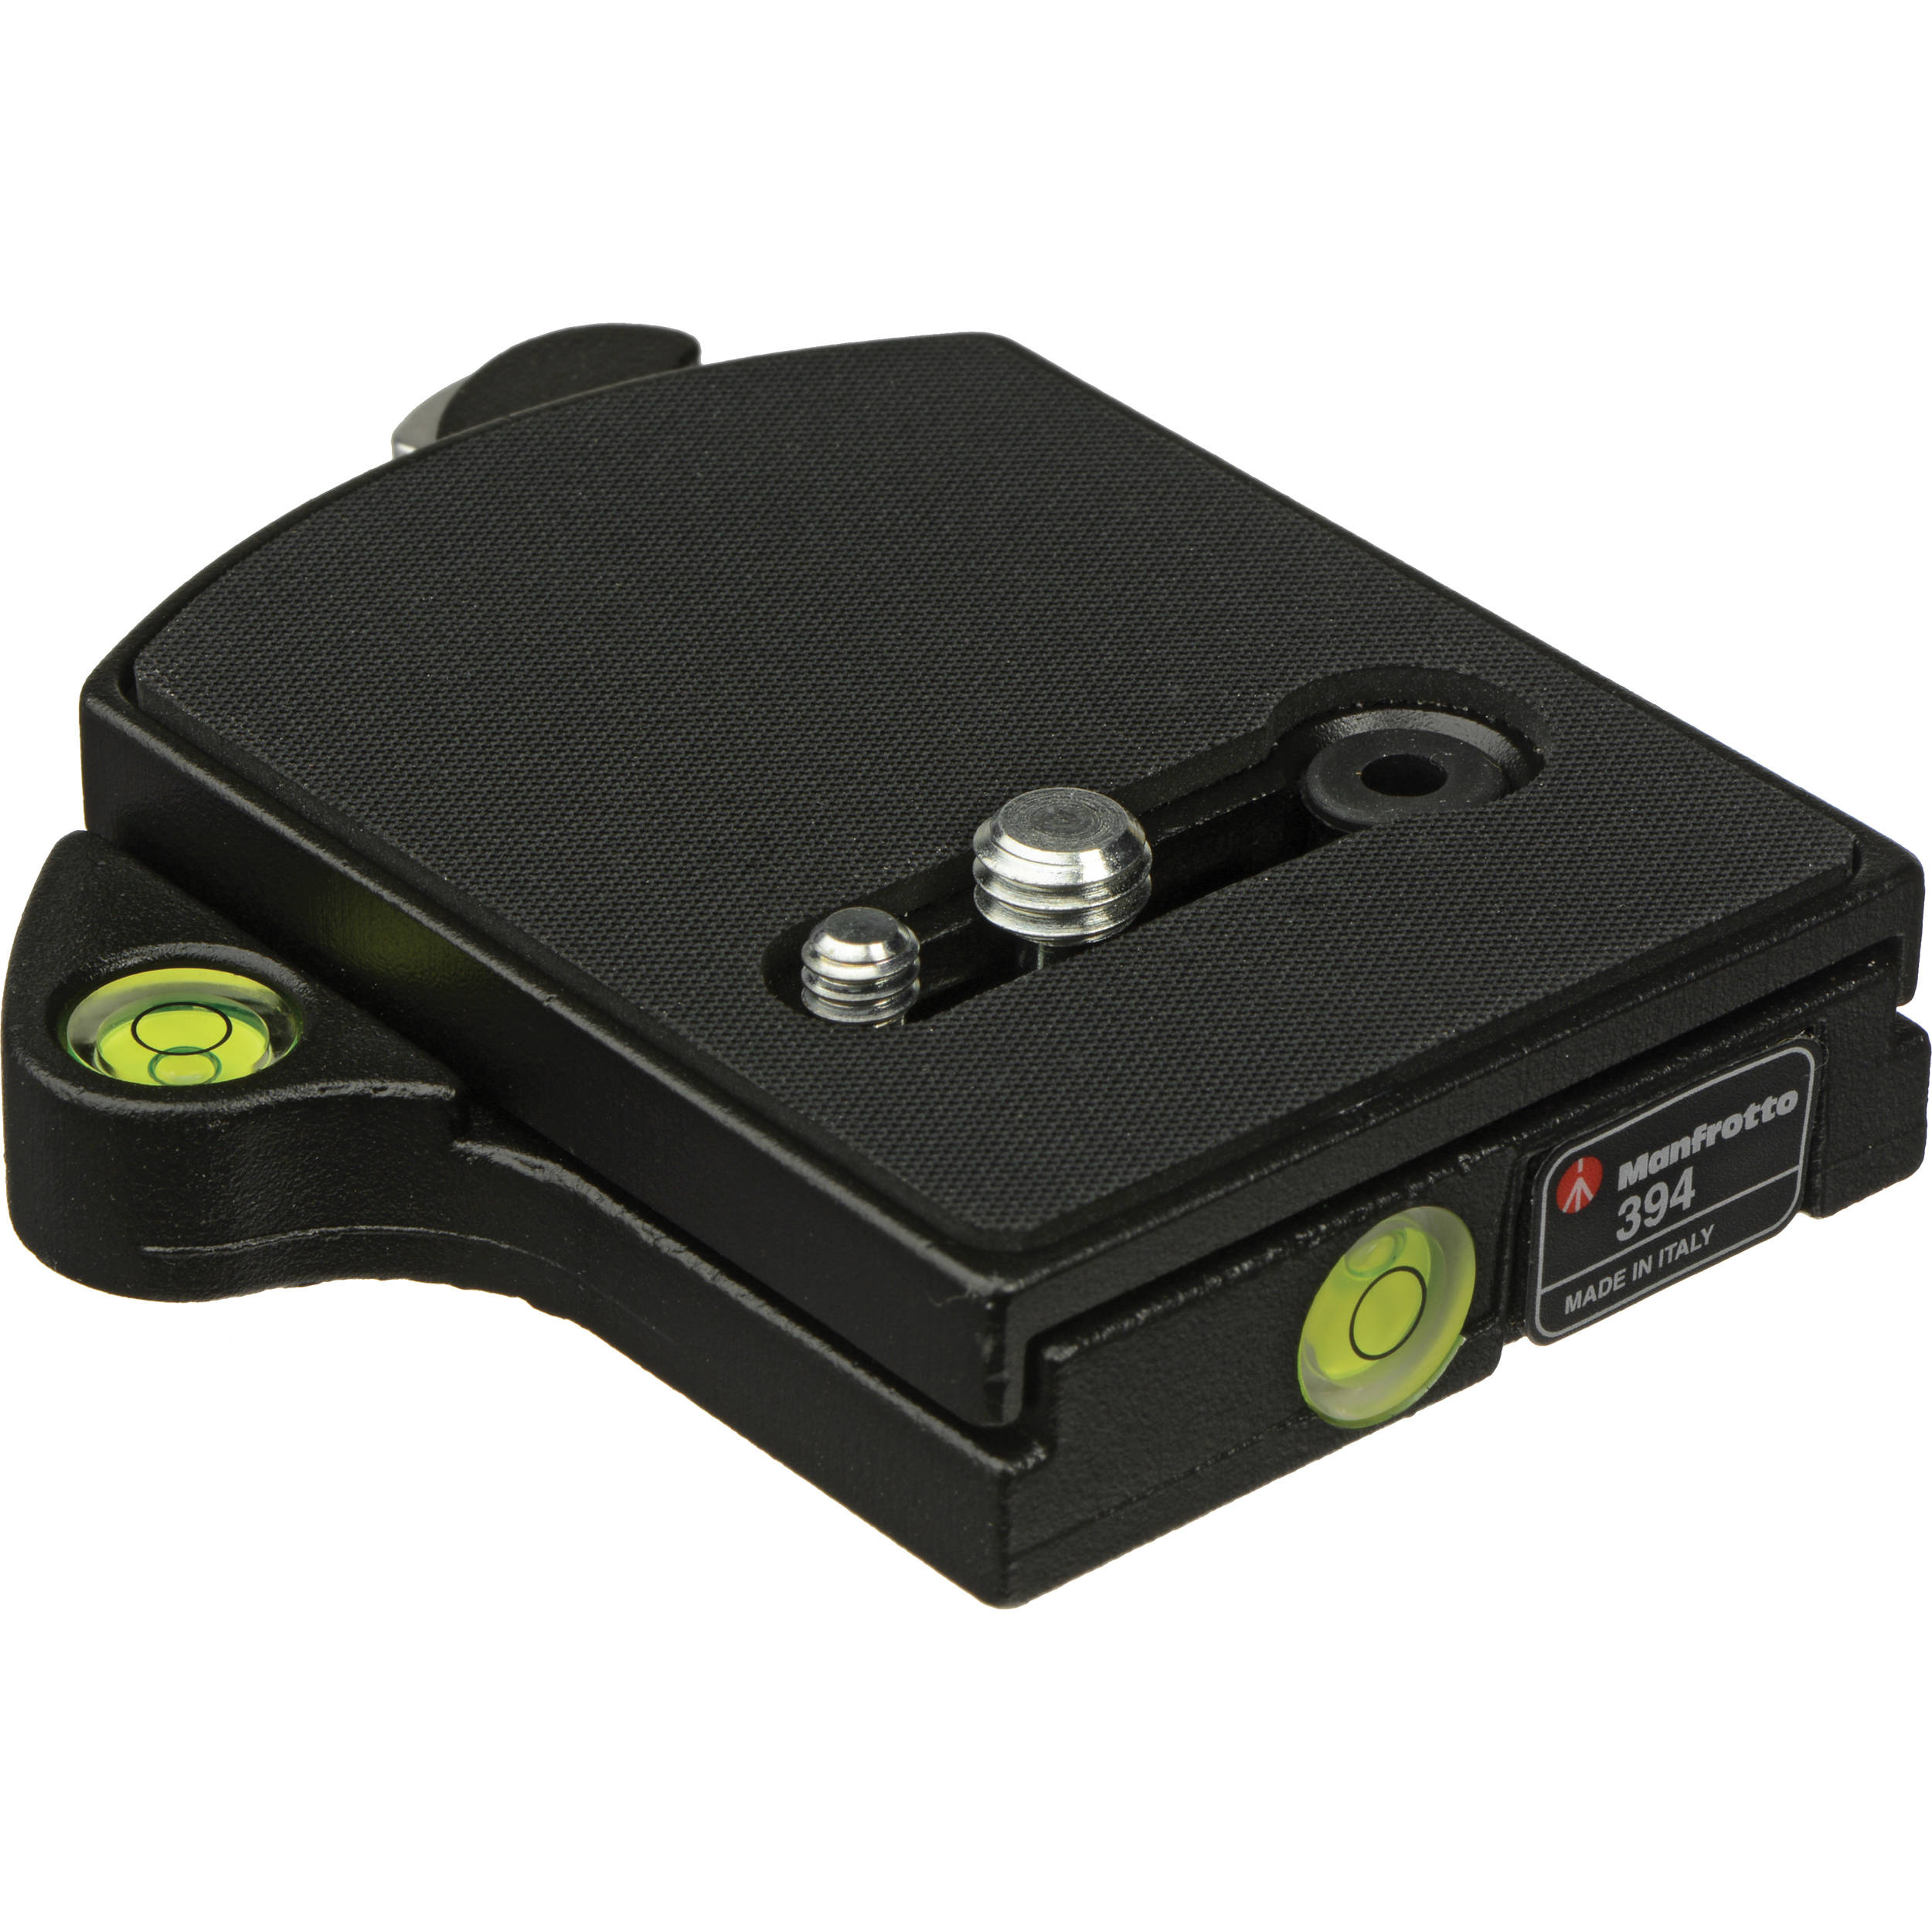 Manfrotto 394 - Quick Release Plate Adapter